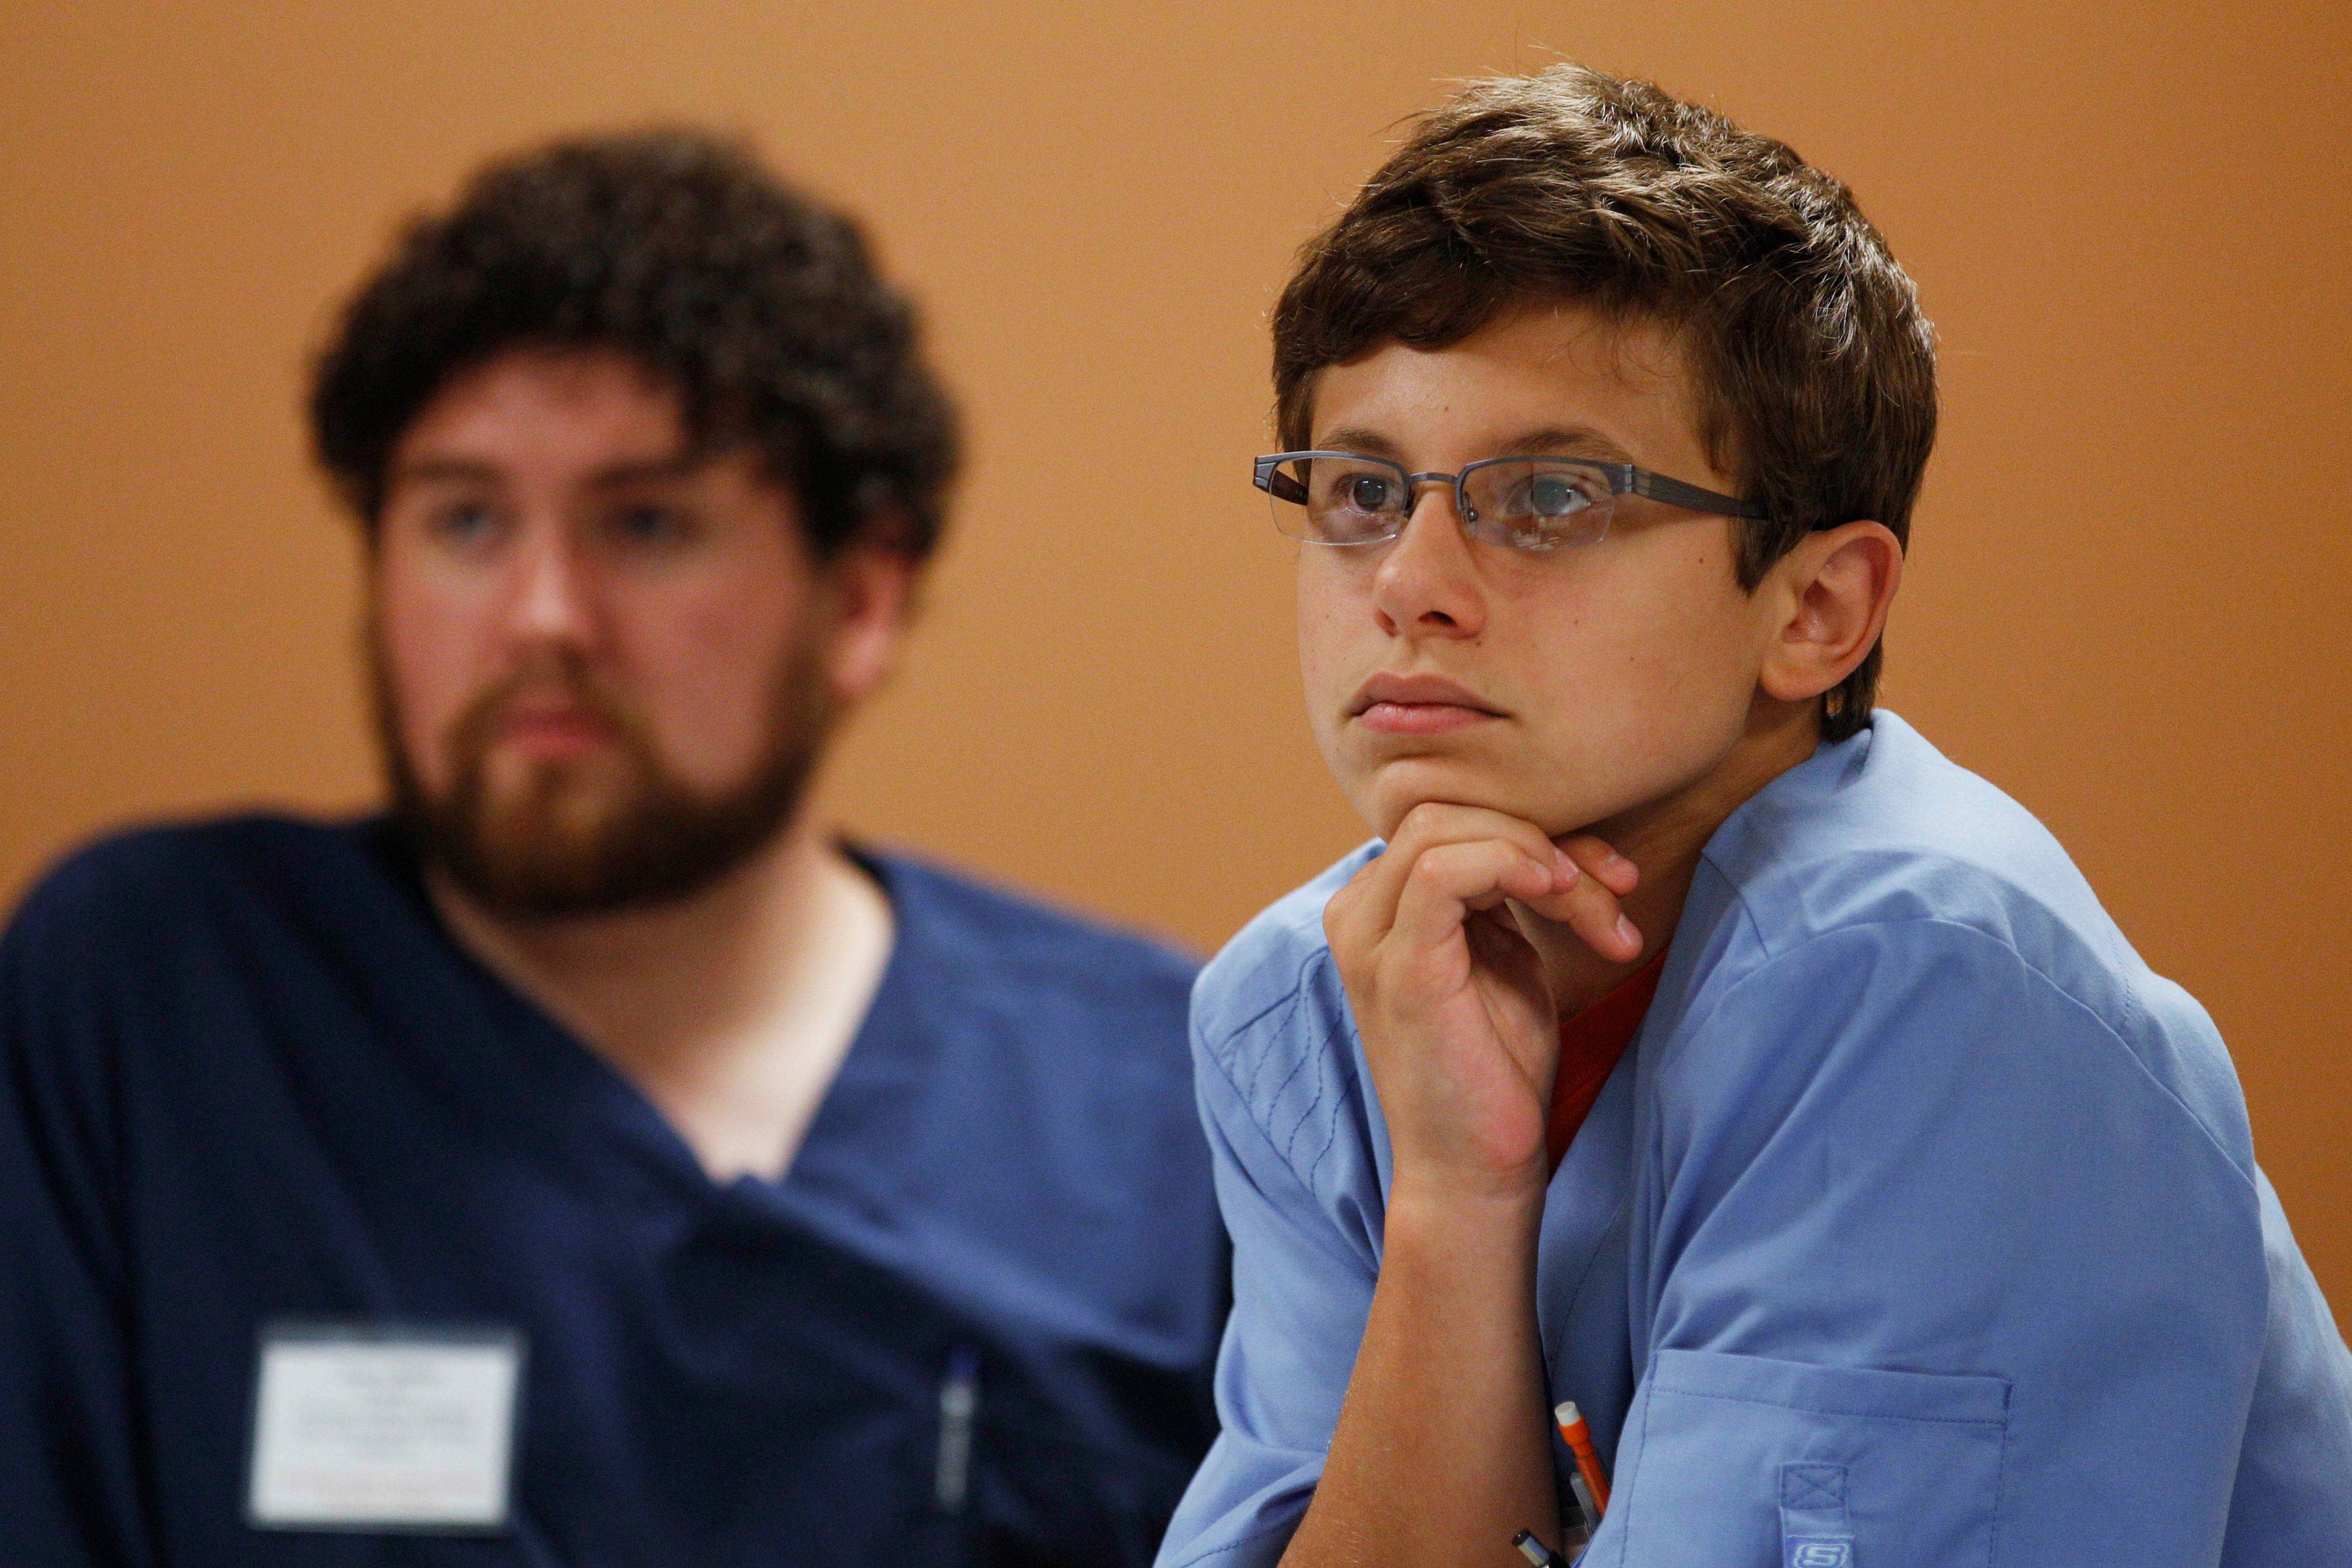 Noah Egler listens Aug. 2 during a workshop on electronic prosthetics at the Indiana University Northwest medical school in Gary, Ind. At left is Egler's lab partner Jarod Markley.